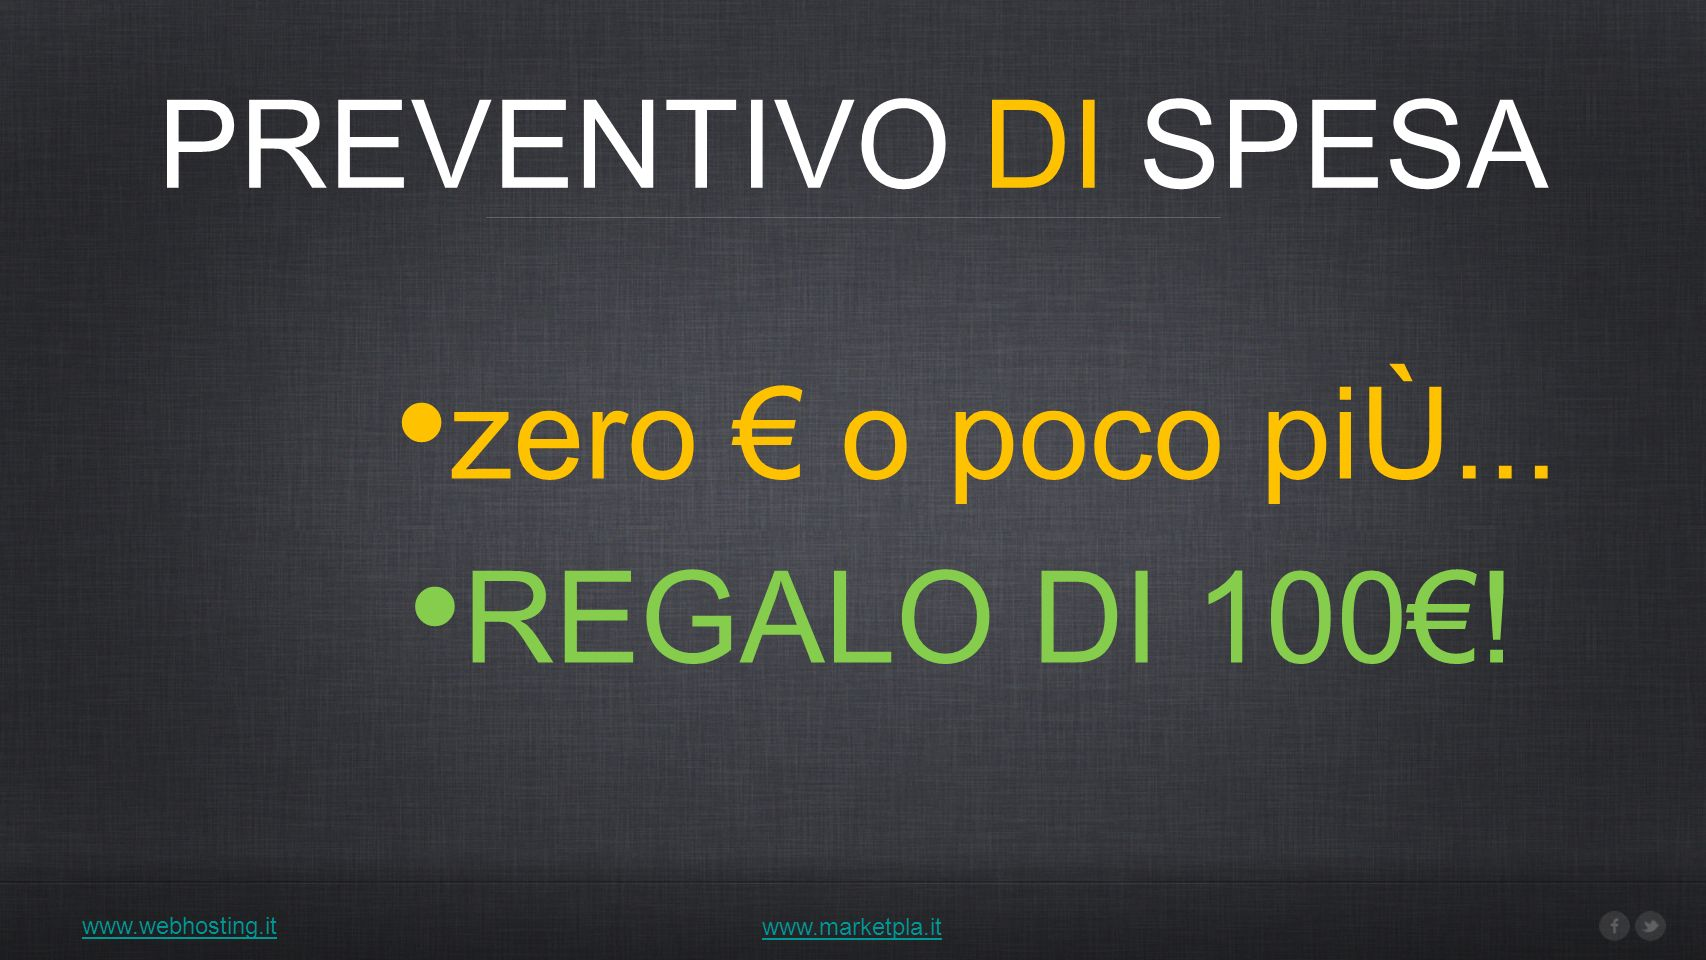 PREVENTIVO DI SPESA www.webhosting.it zero o poco piÙ... www.marketpla.it REGALO DI 100!